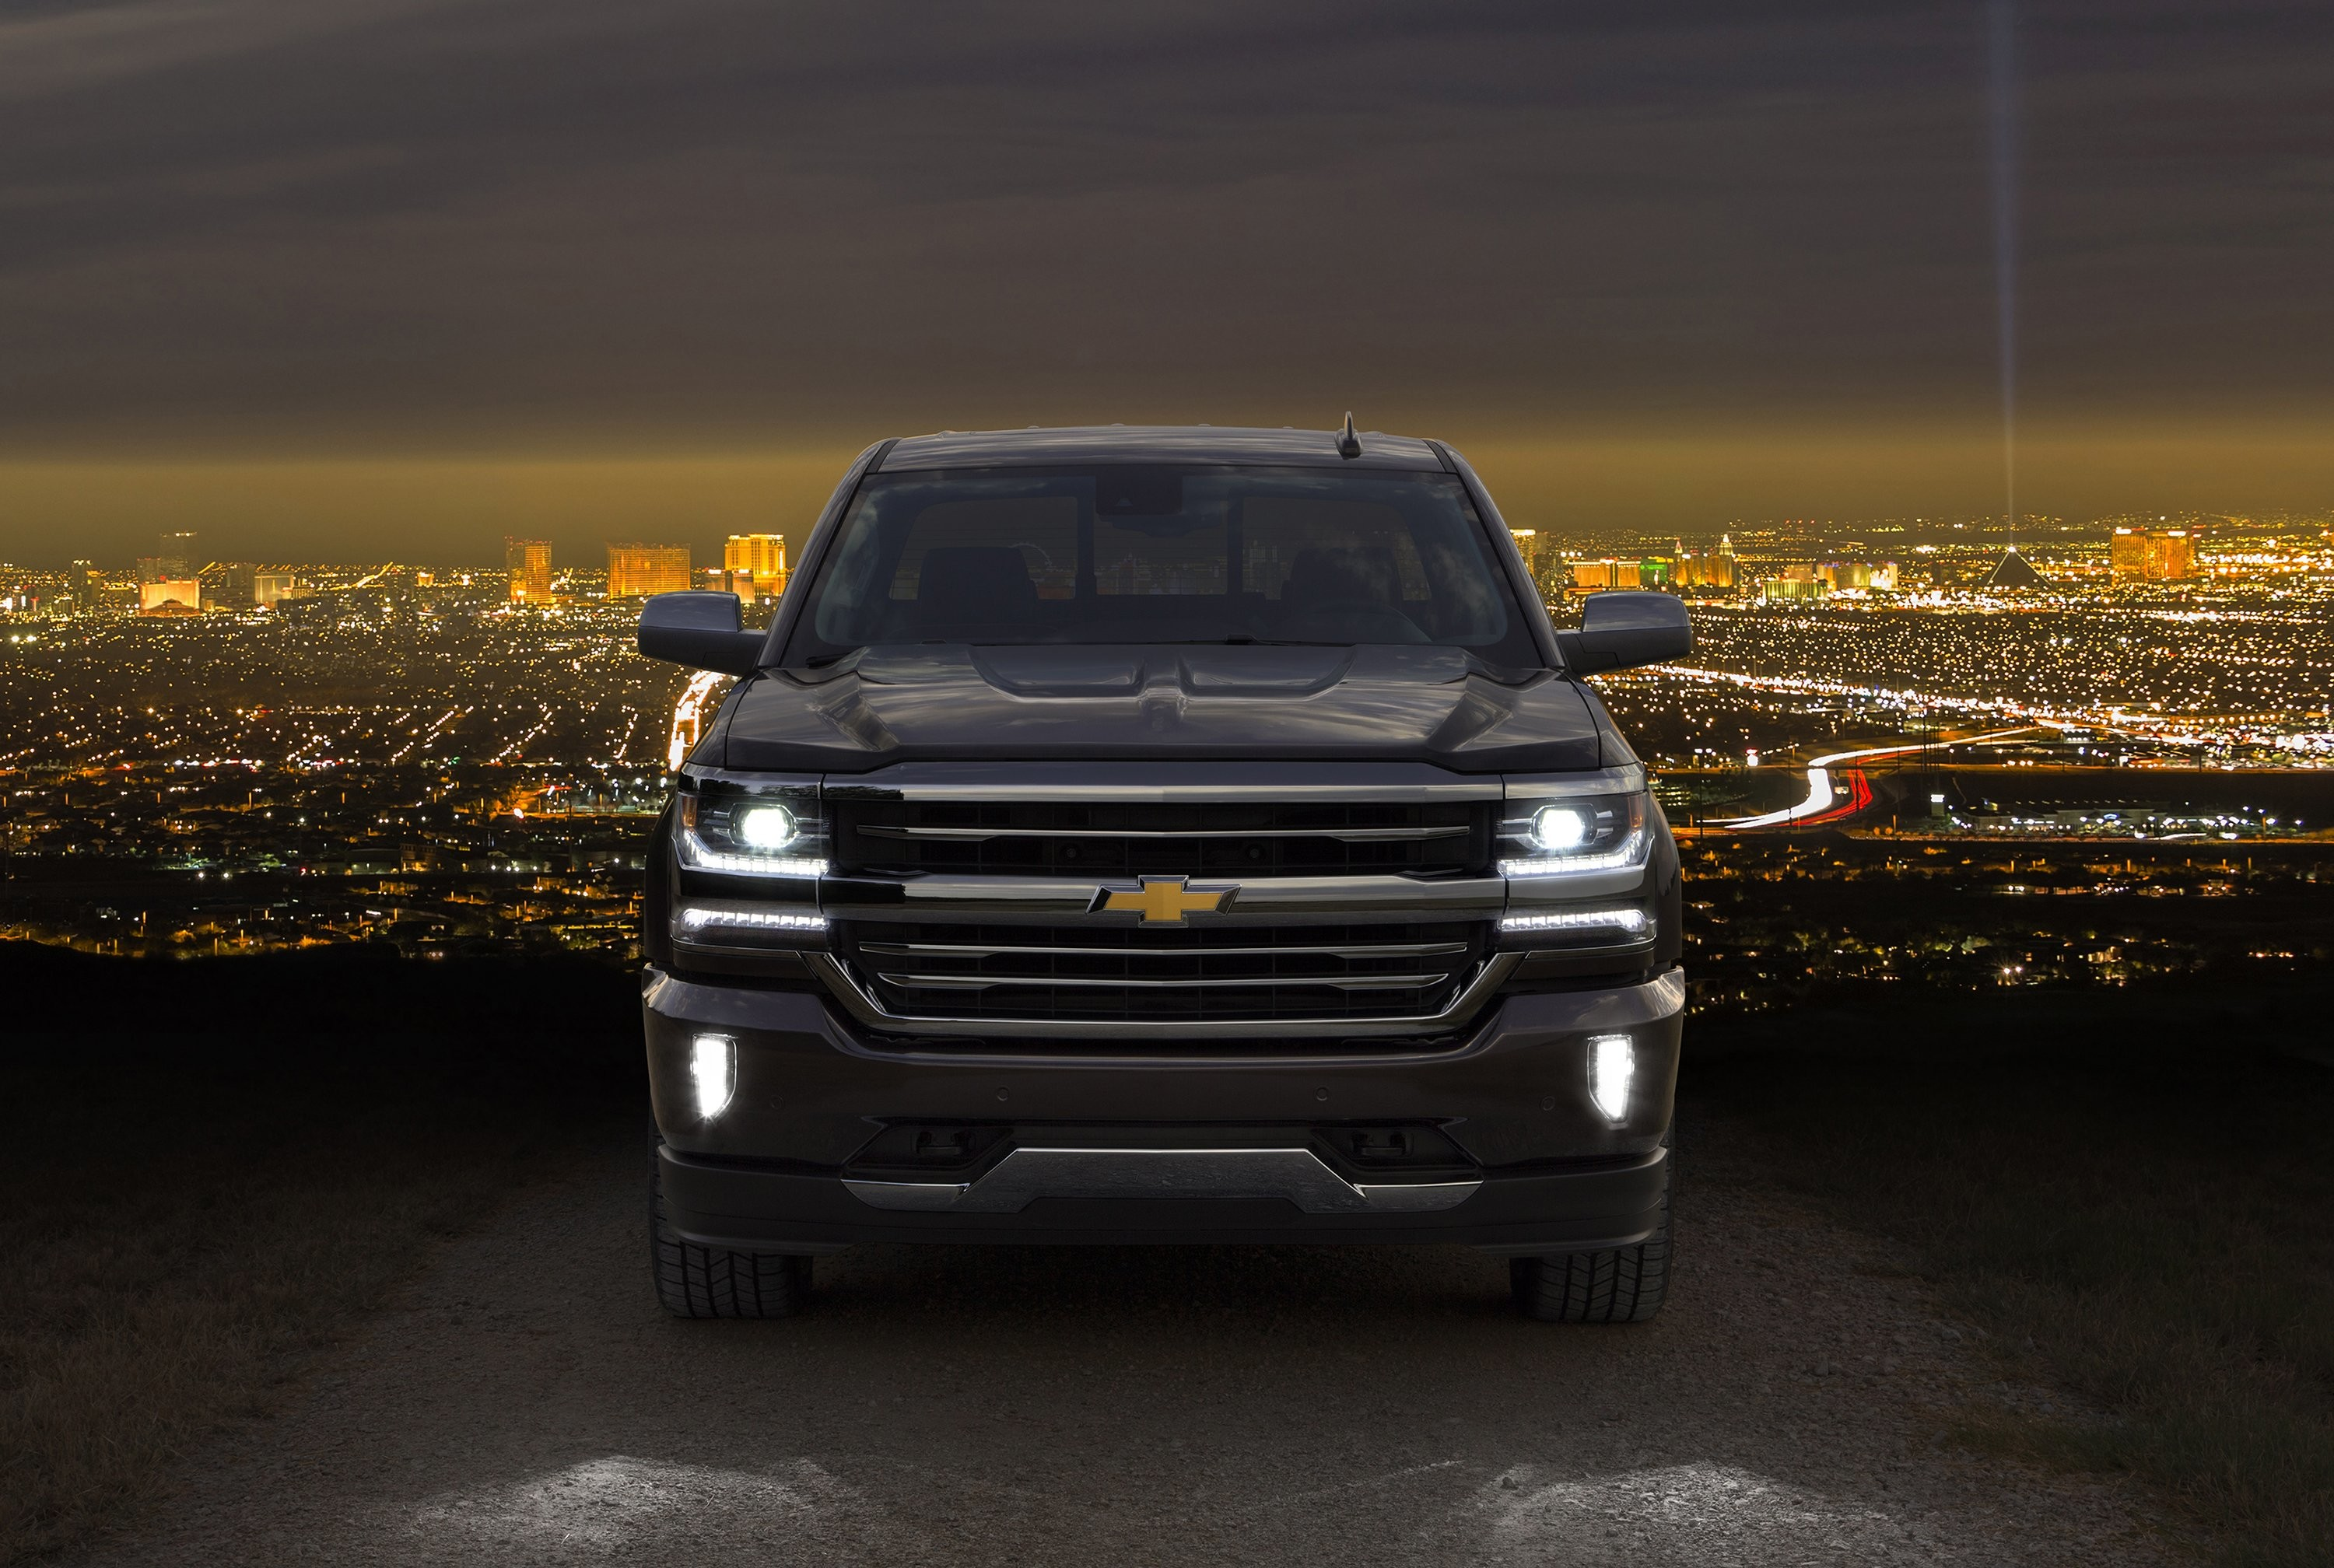 2016 Chevrolet Silverado High Country Crew Cab Pickup Chevy Silverado 2018 Lights 3000x2016 Download Hd Wallpaper Wallpapertip